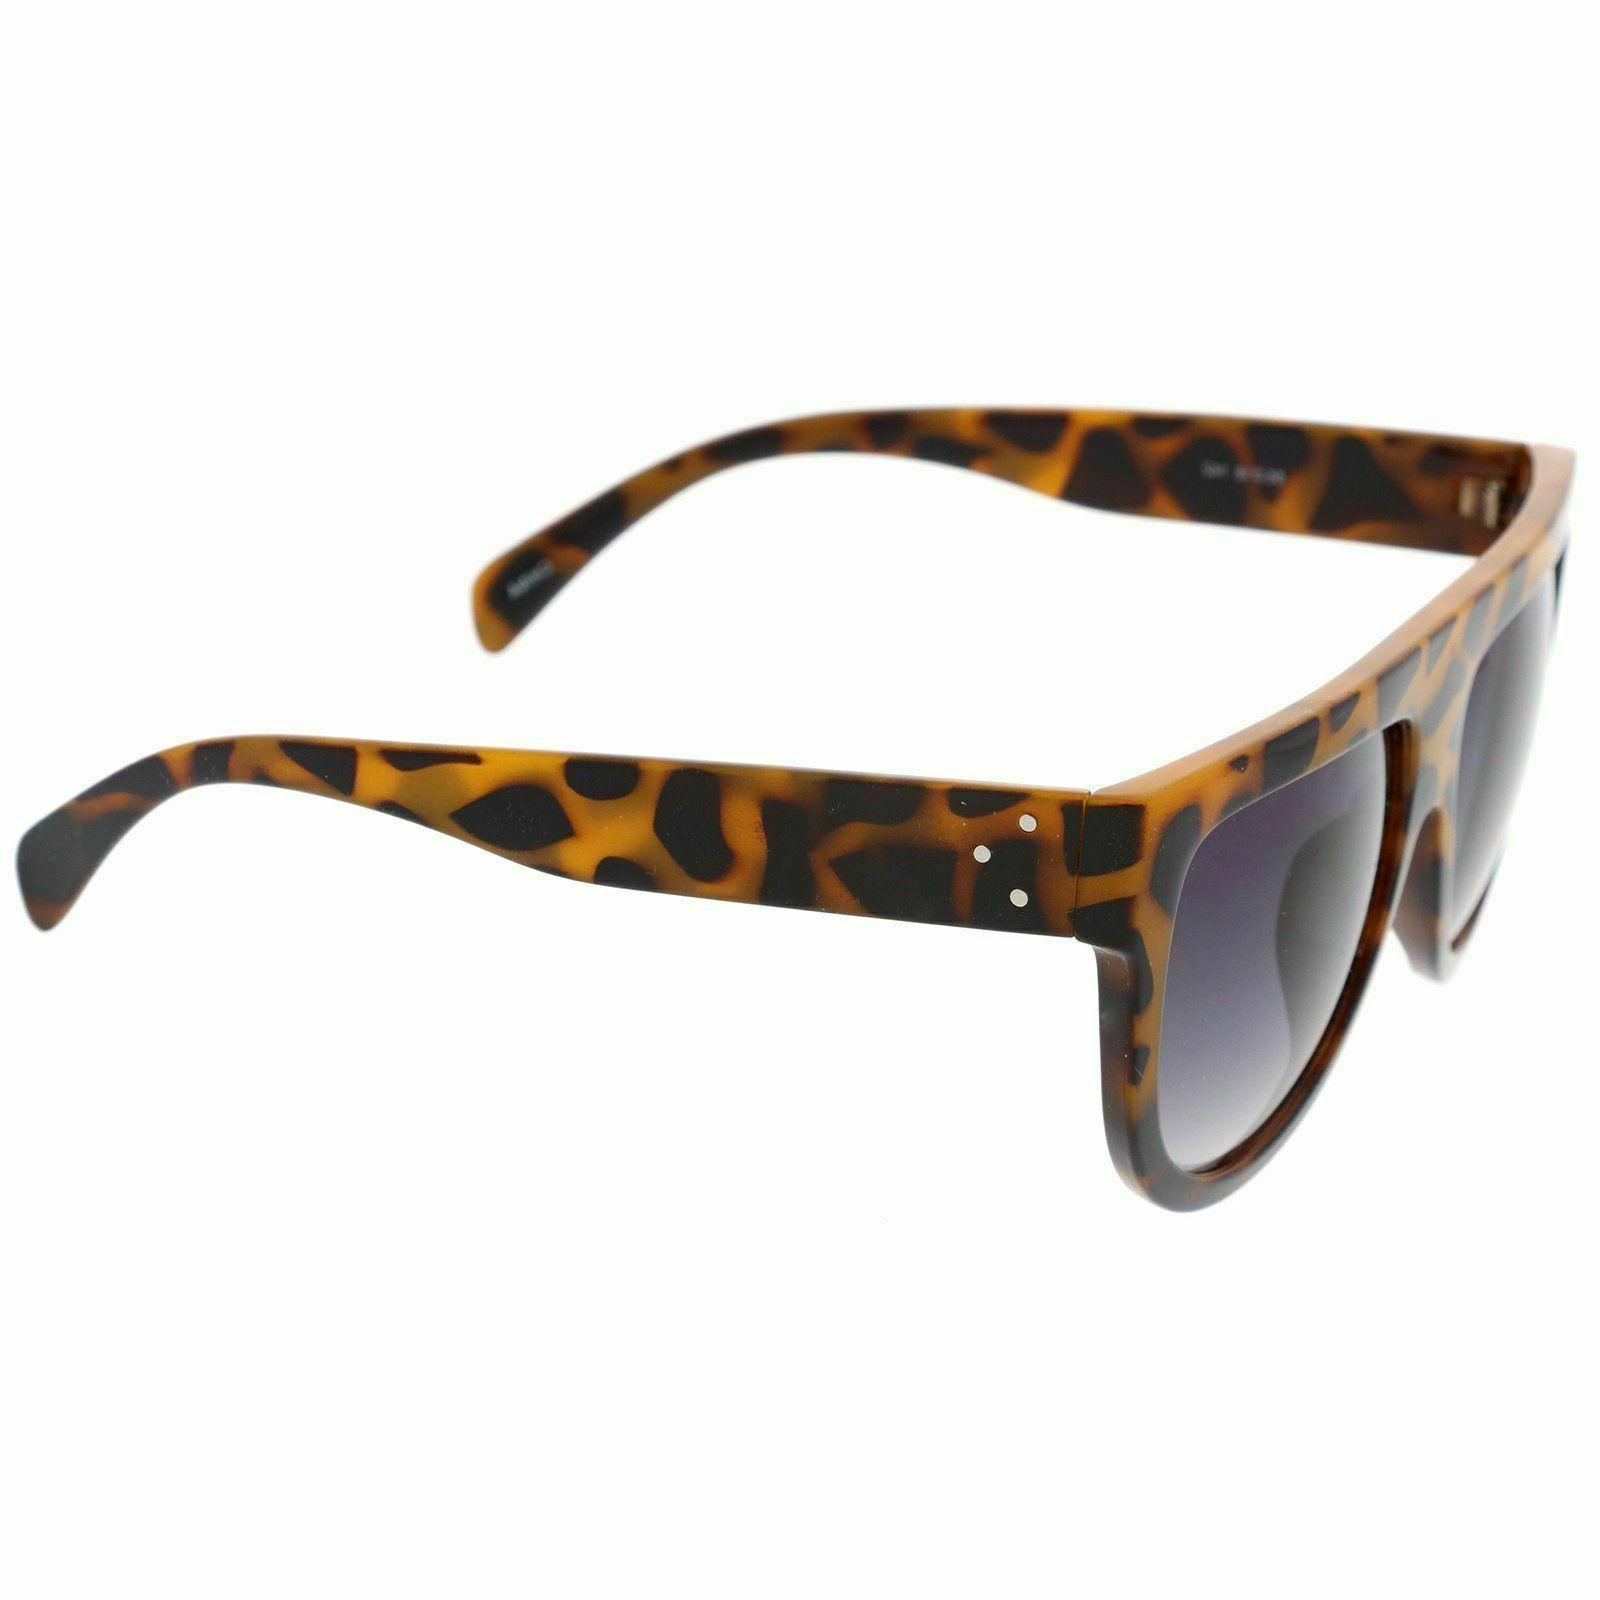 zeroUV Temple Flat Aviator Sunglasses, Yellow Tortoise